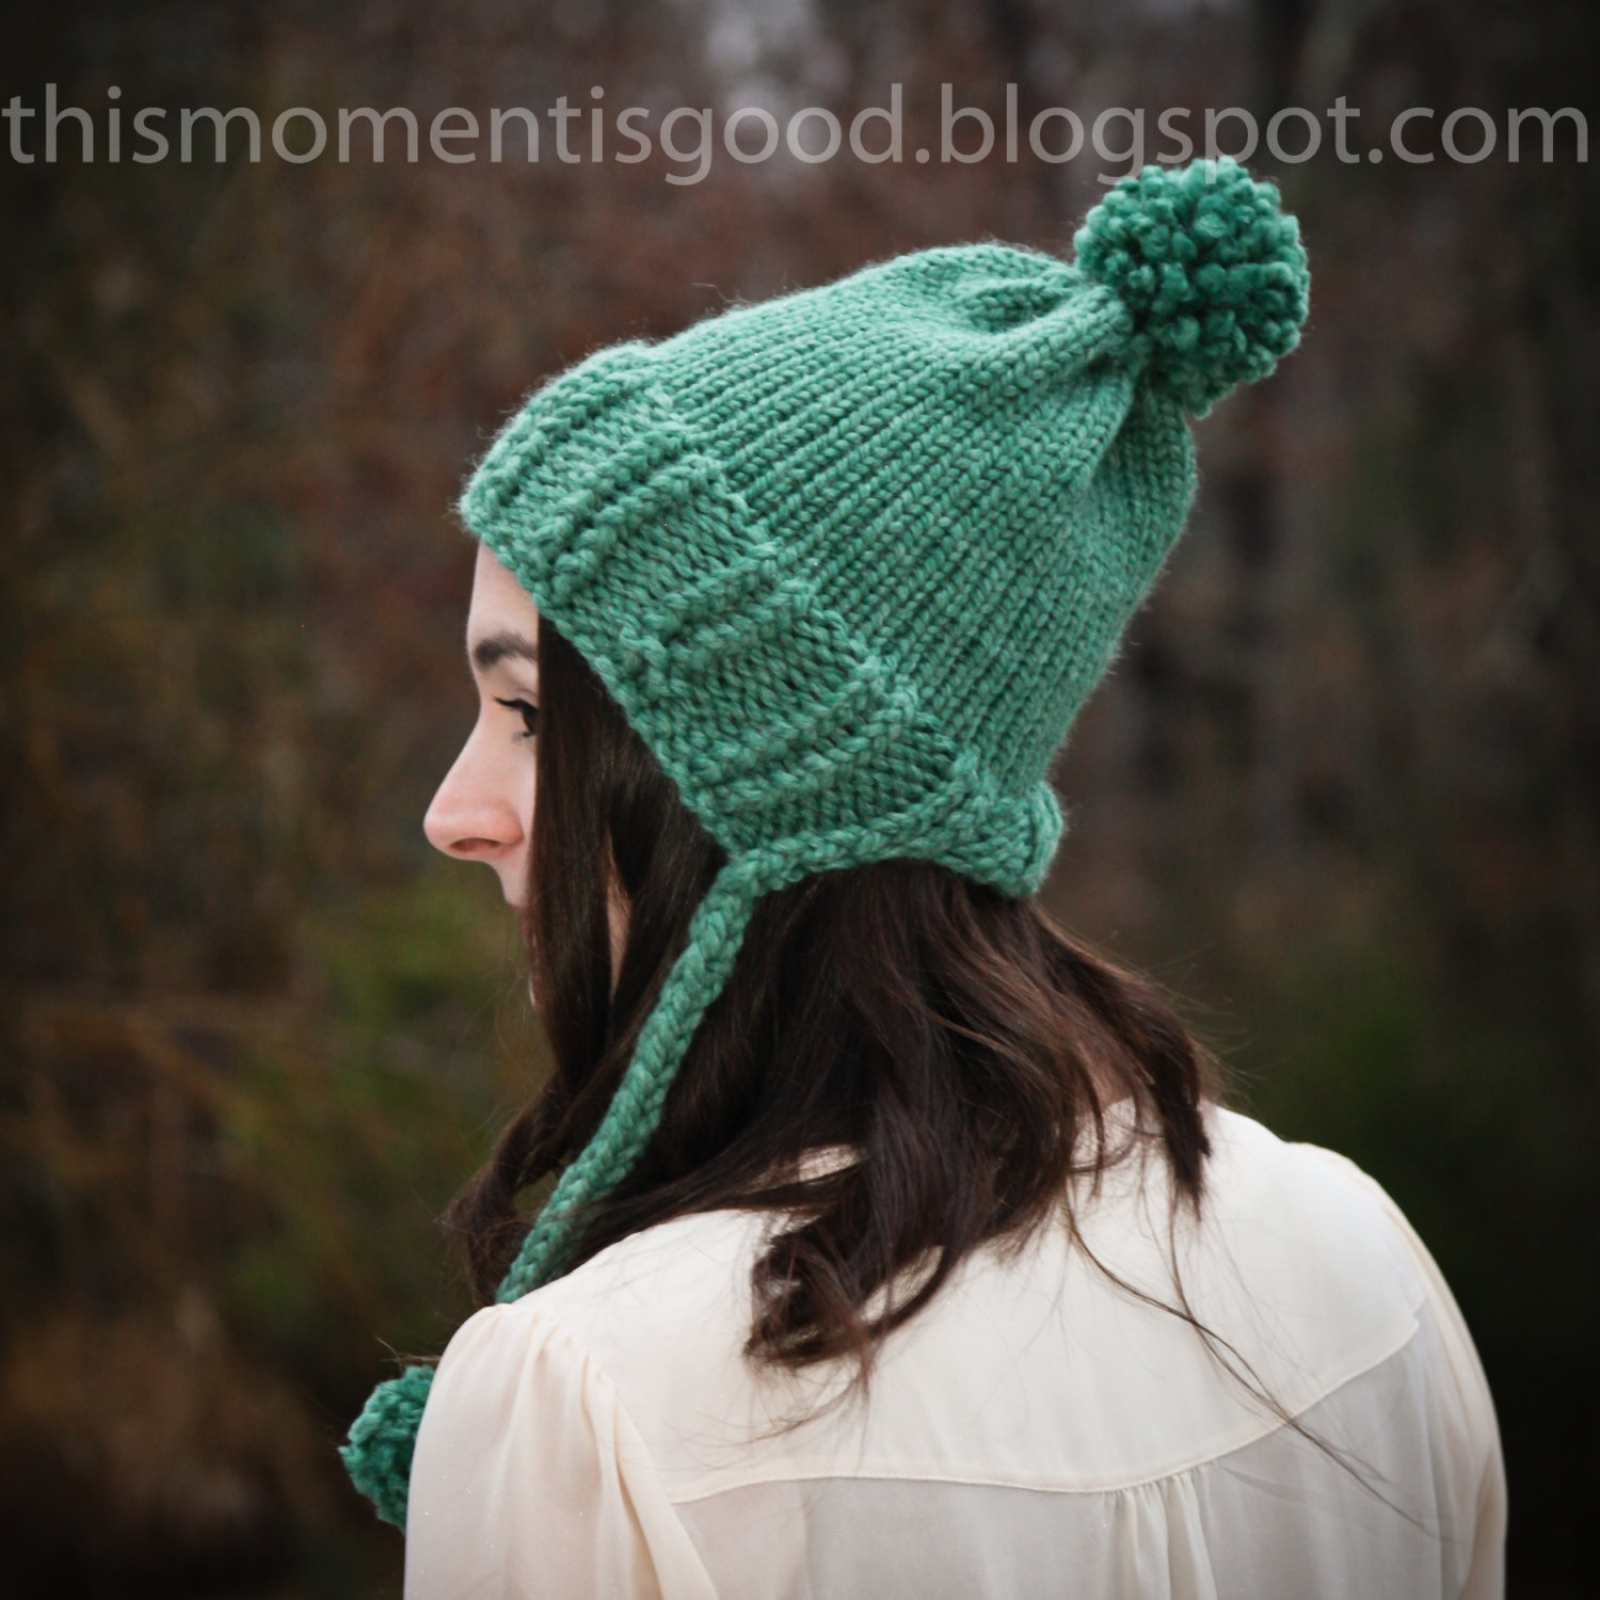 Loom Knit Baby Hat With Brim : Loom knit earflap split brim hat this moment is good